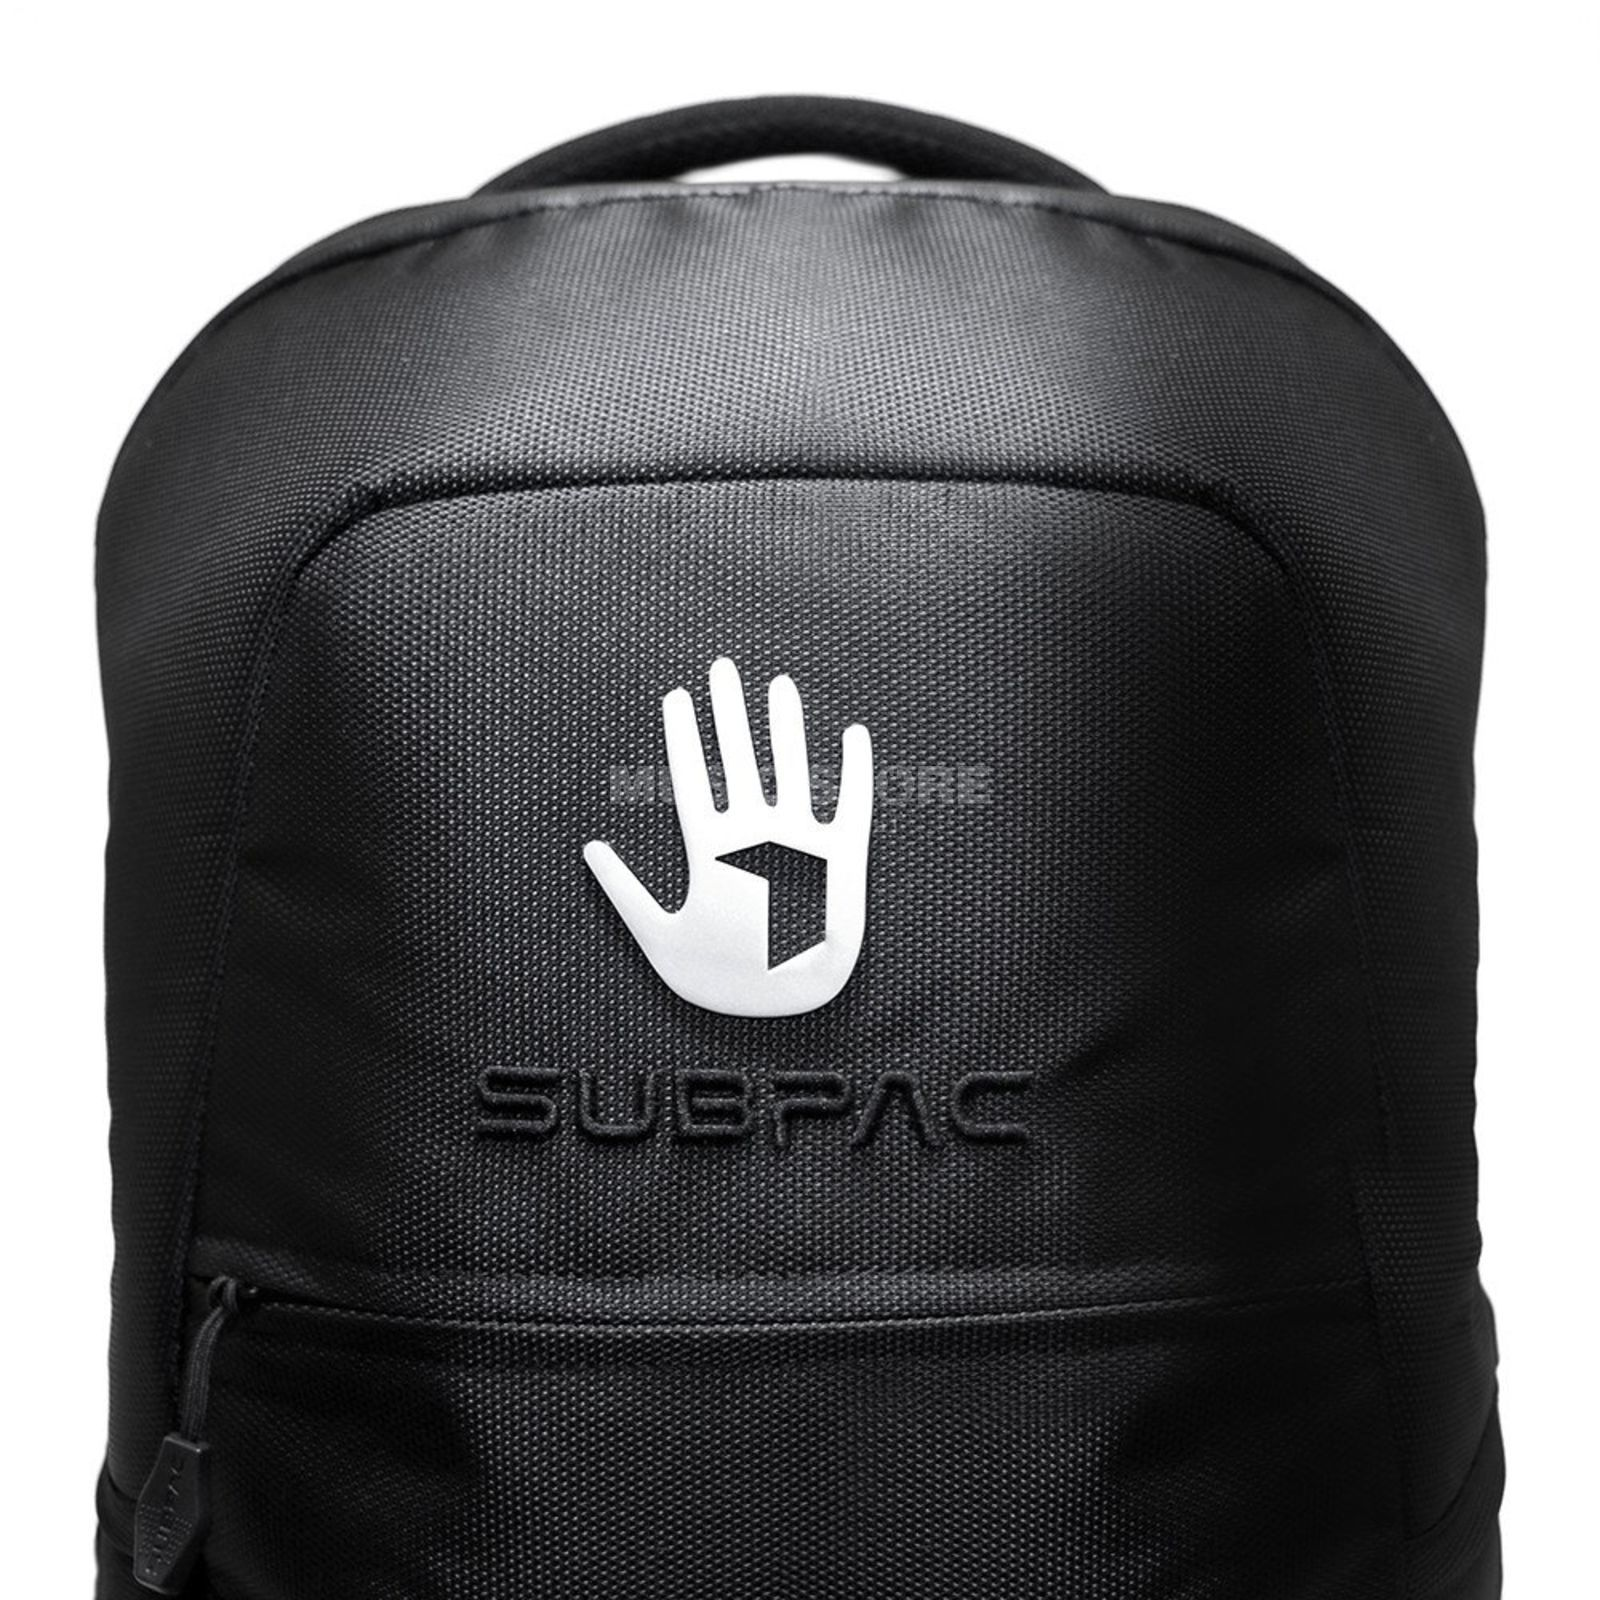 SubPac S2 BackPac Product Image